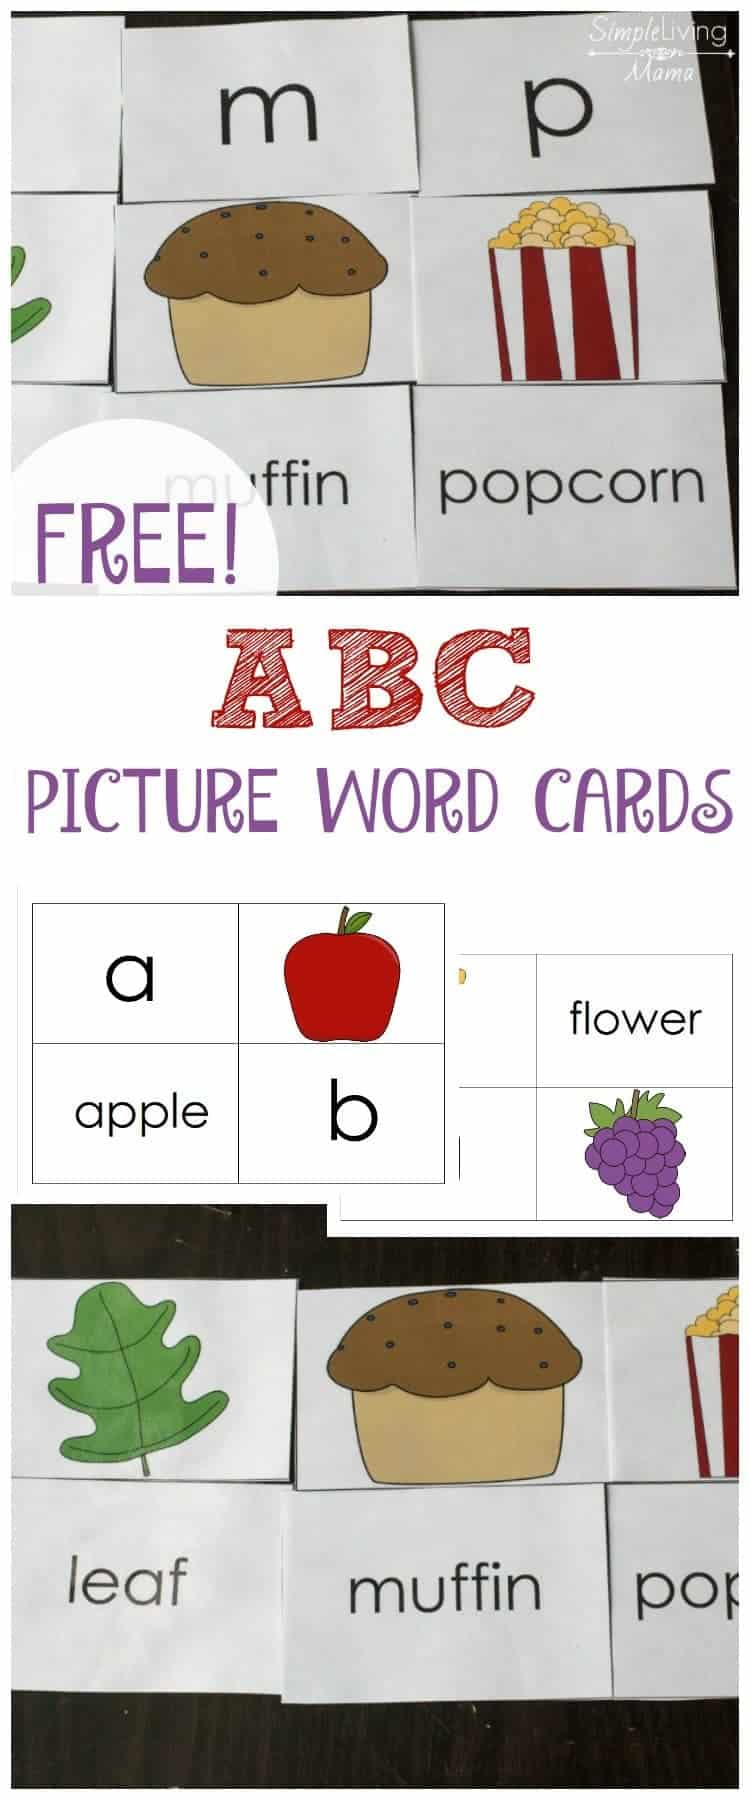 These free printable Alphabet picture word cards are perfect for teaching preschoolers letter and sound recognition. Practice with these ABC flashcards!